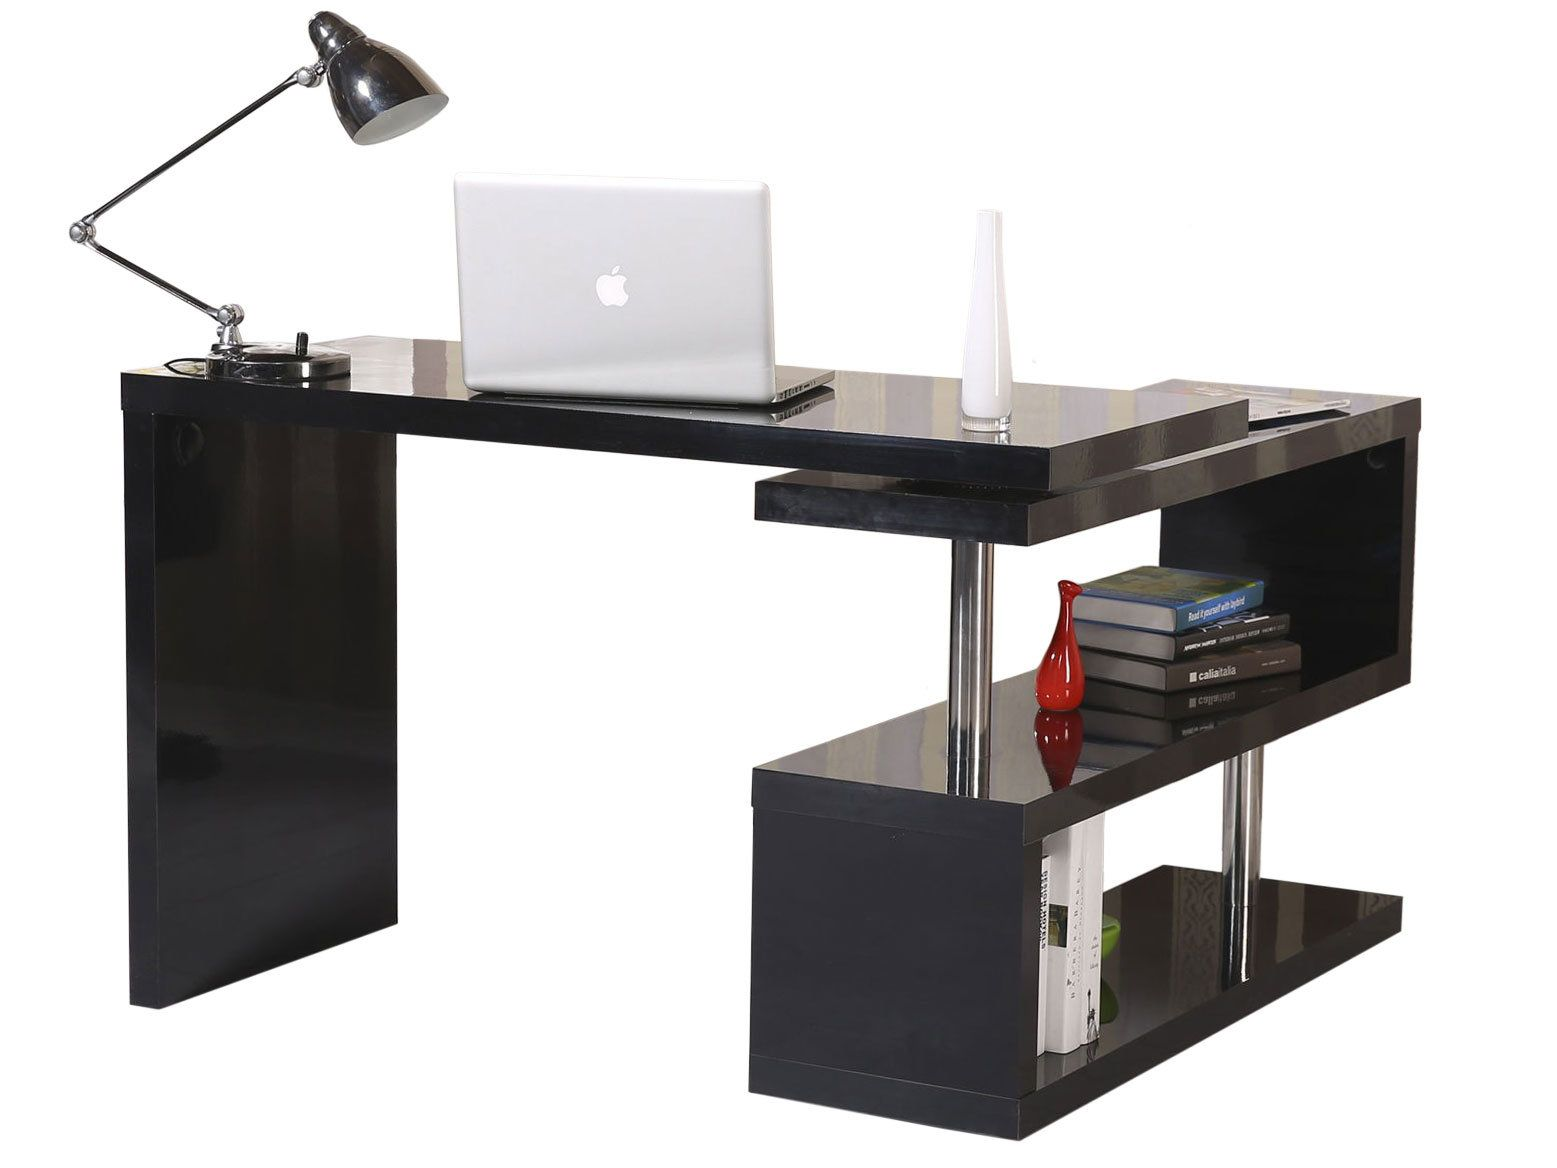 Table Bureau Noir : Table bureau table informatique adjacente pivotante1 360°avec